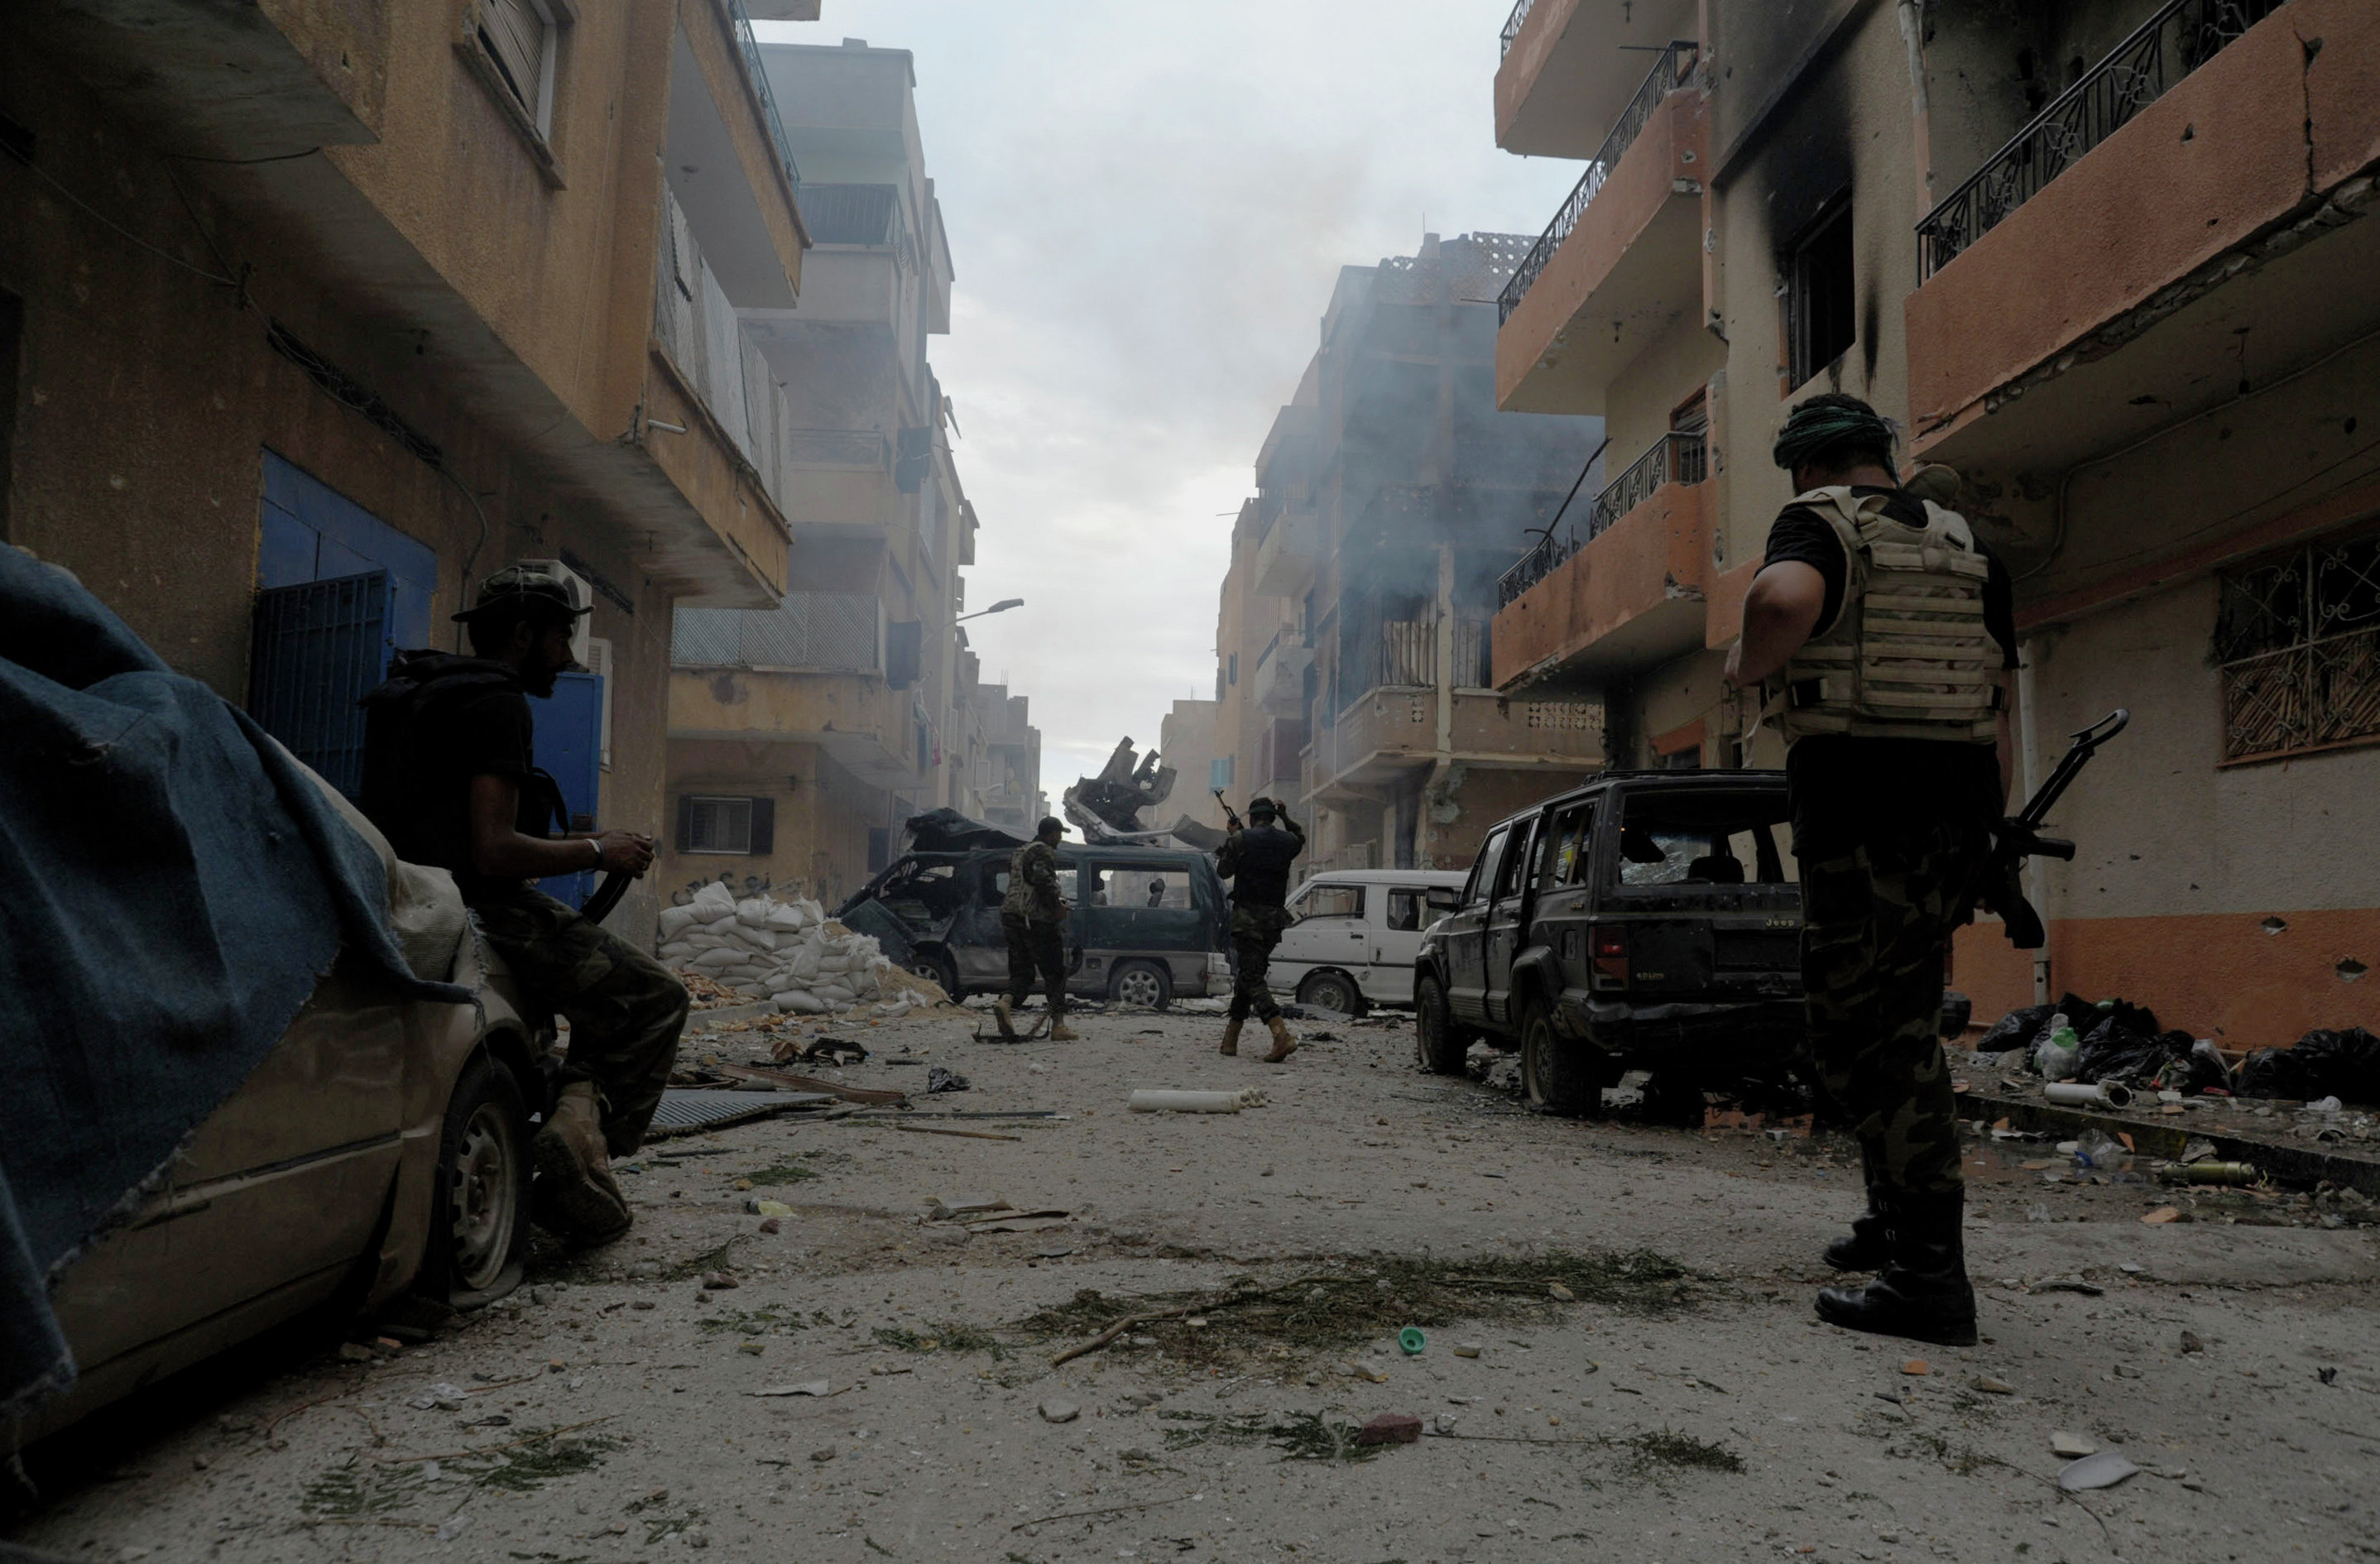 Libyan military soldiers check on an area asLibyan military soldiers check on an area as they battle with Islamic extremist militias in Benghazi, Libya, Thursday, Oct. 30, 2014.  they battle with Islamic extremist militias in Benghazi, Libya, Thursday, Oct. 30, 2014.